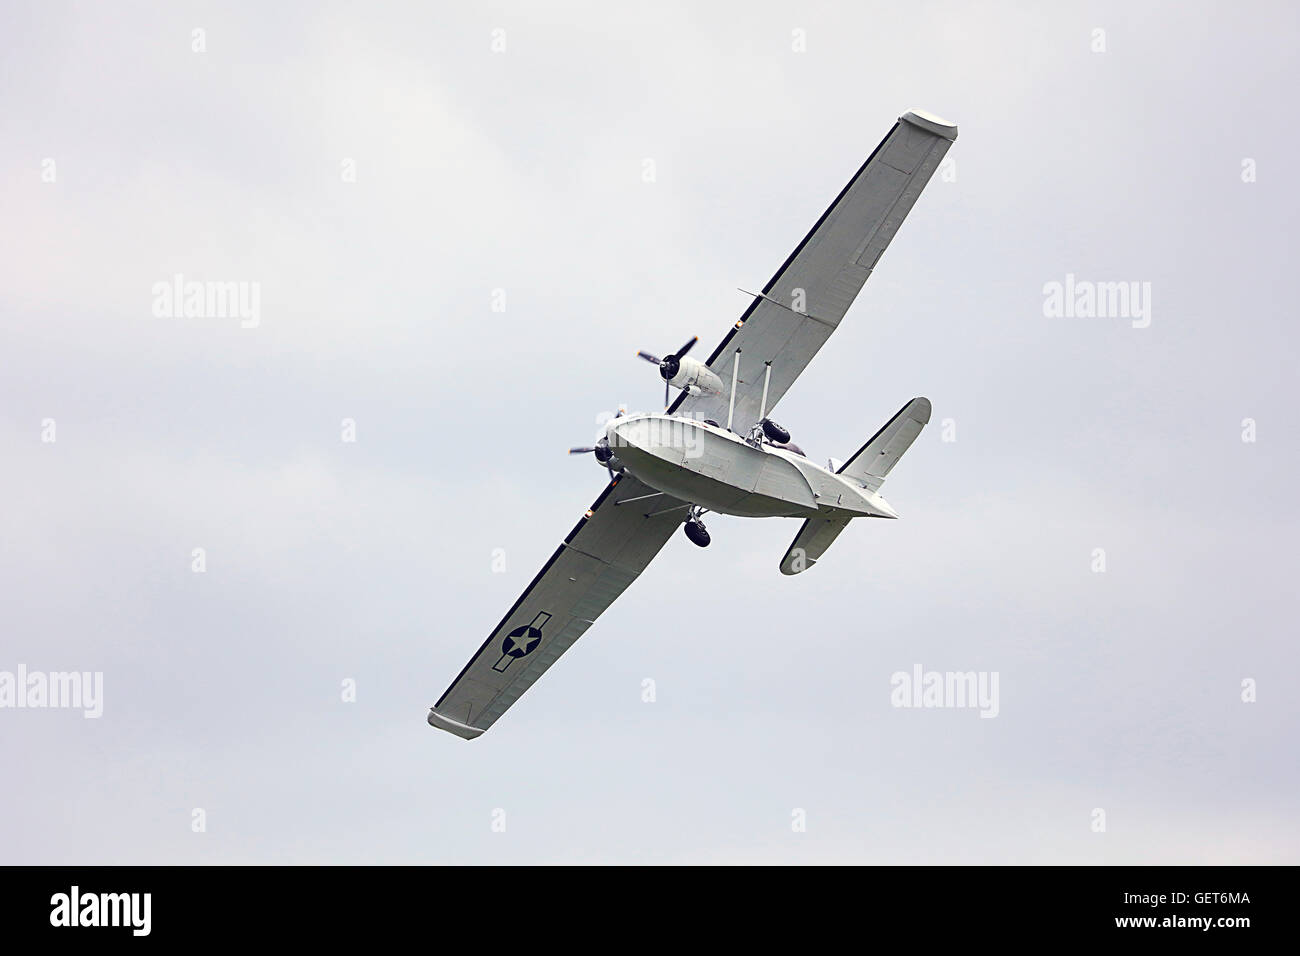 The under belly of the Catalina Flying boat - Stock Image